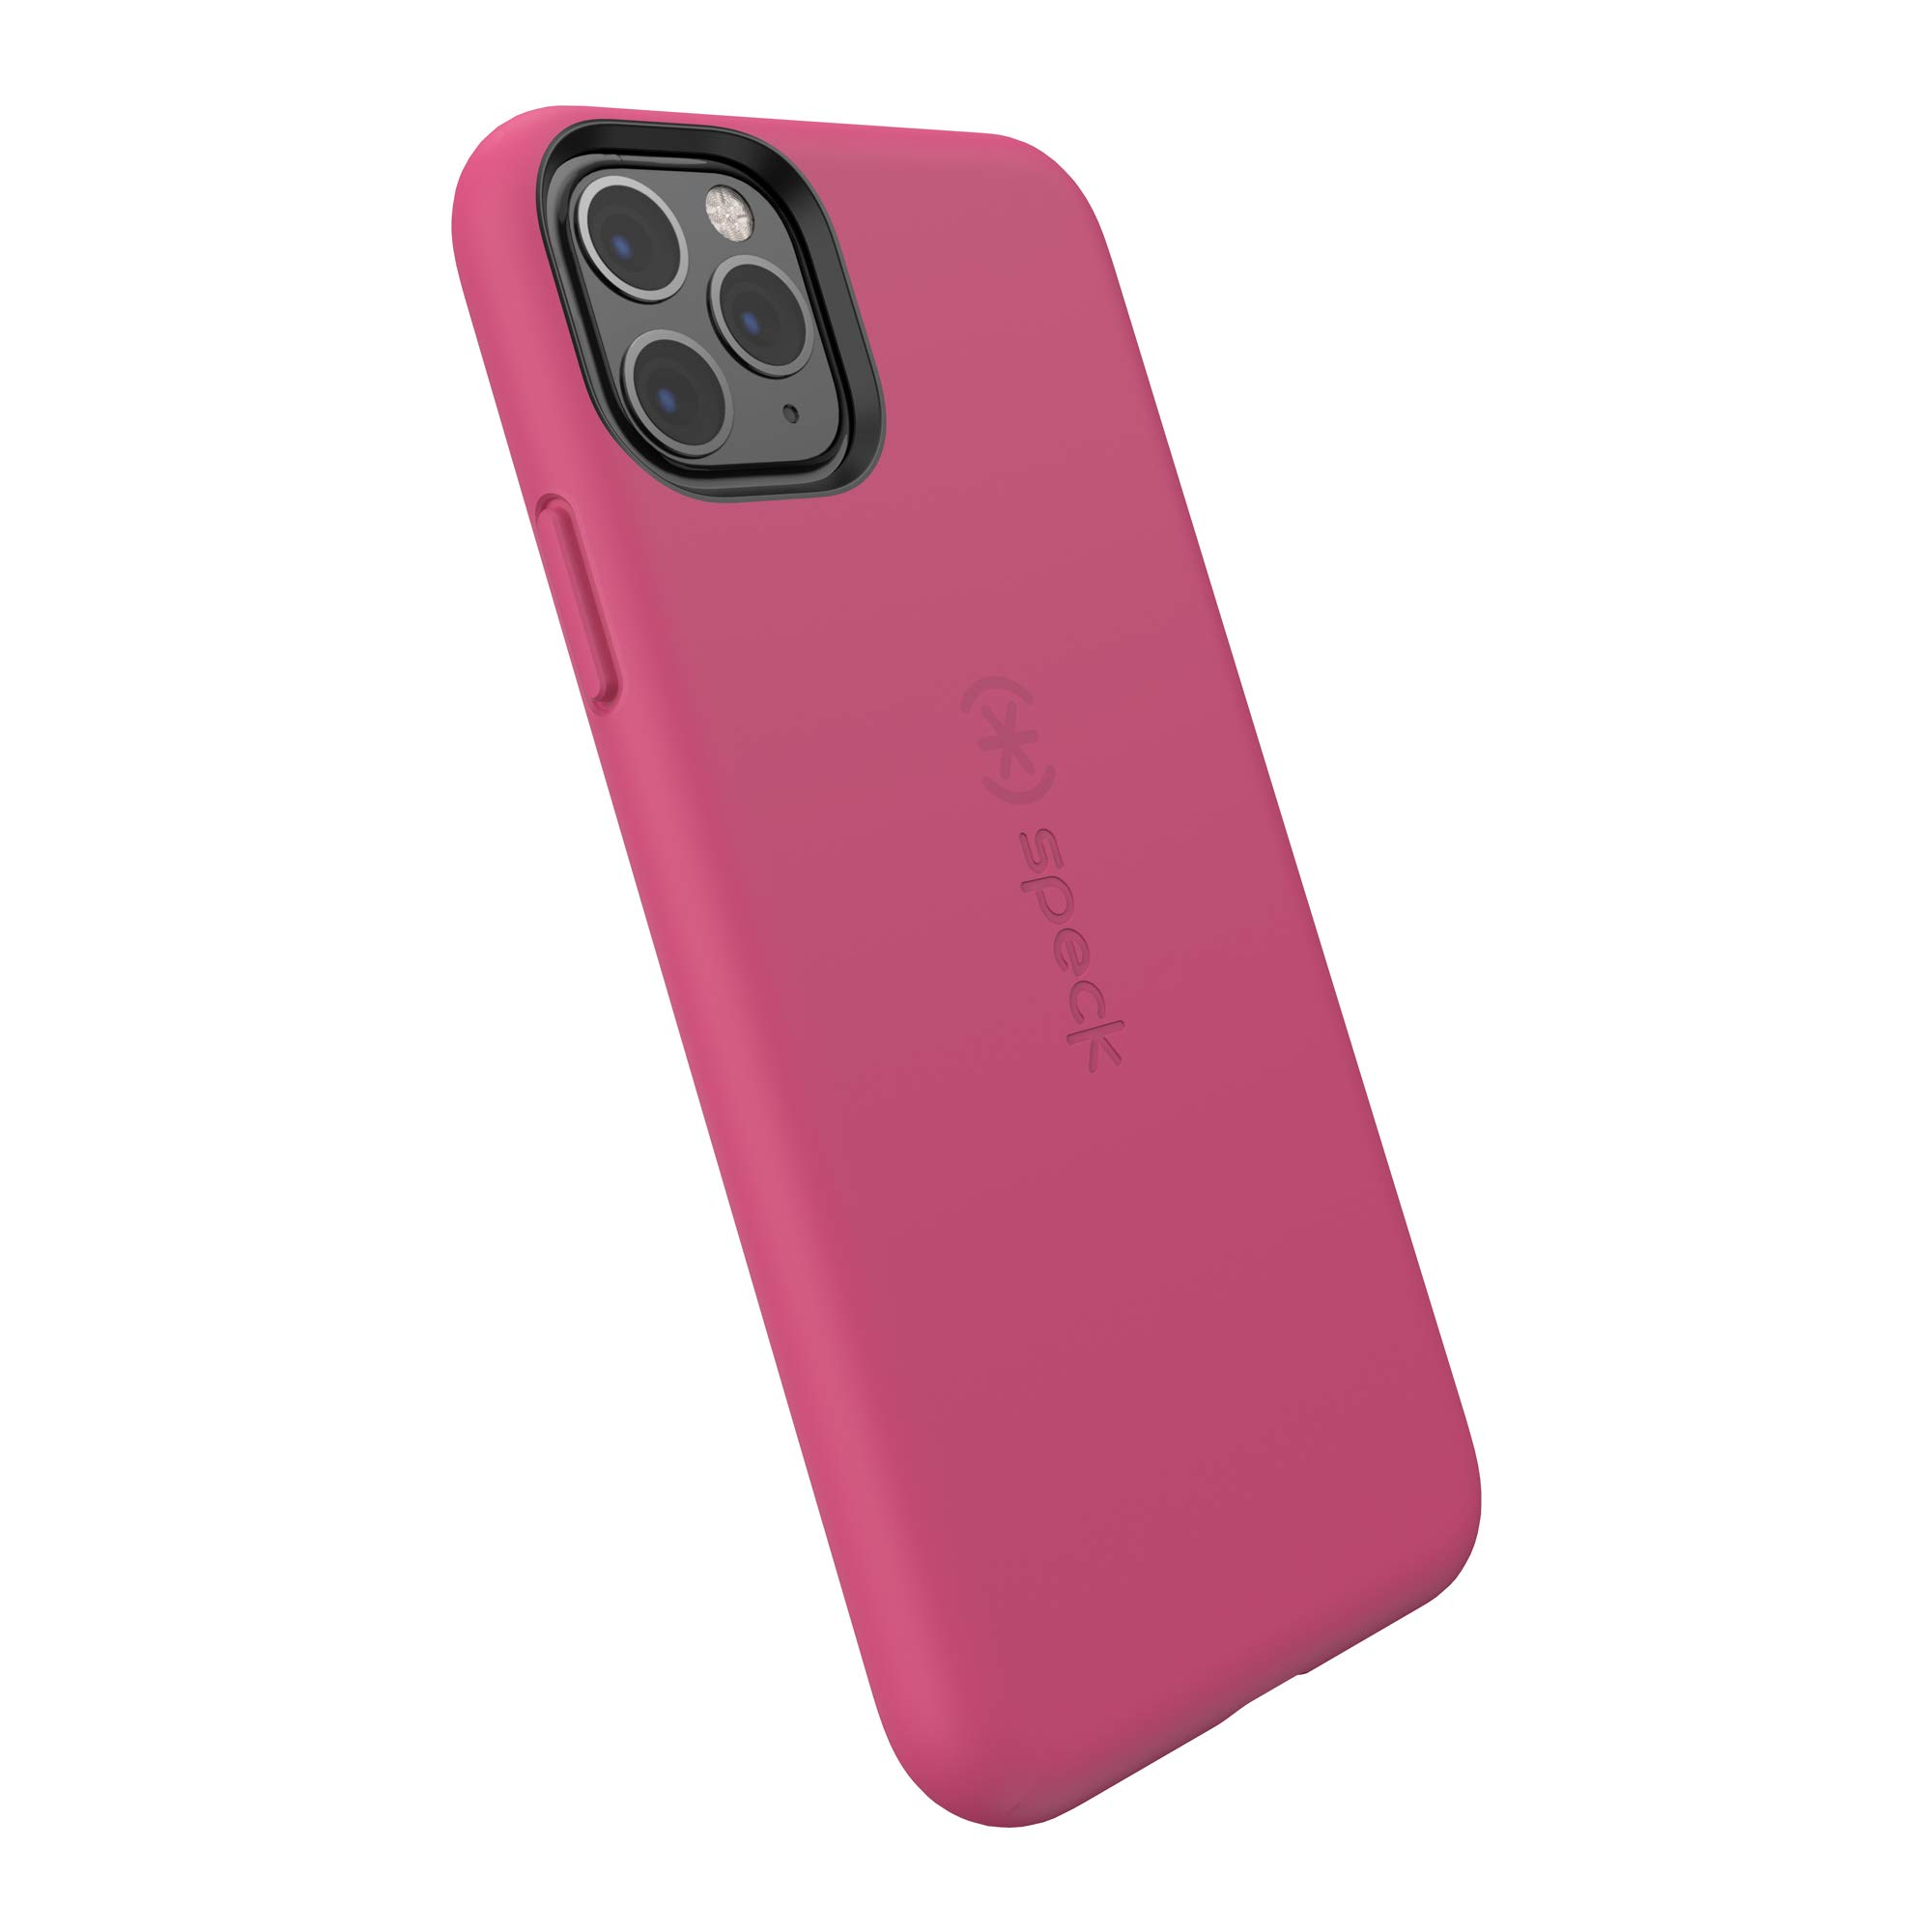 Speck CandyShell Fit iPhone 11 Pro Max Case, Berry Pink/Berry Pink